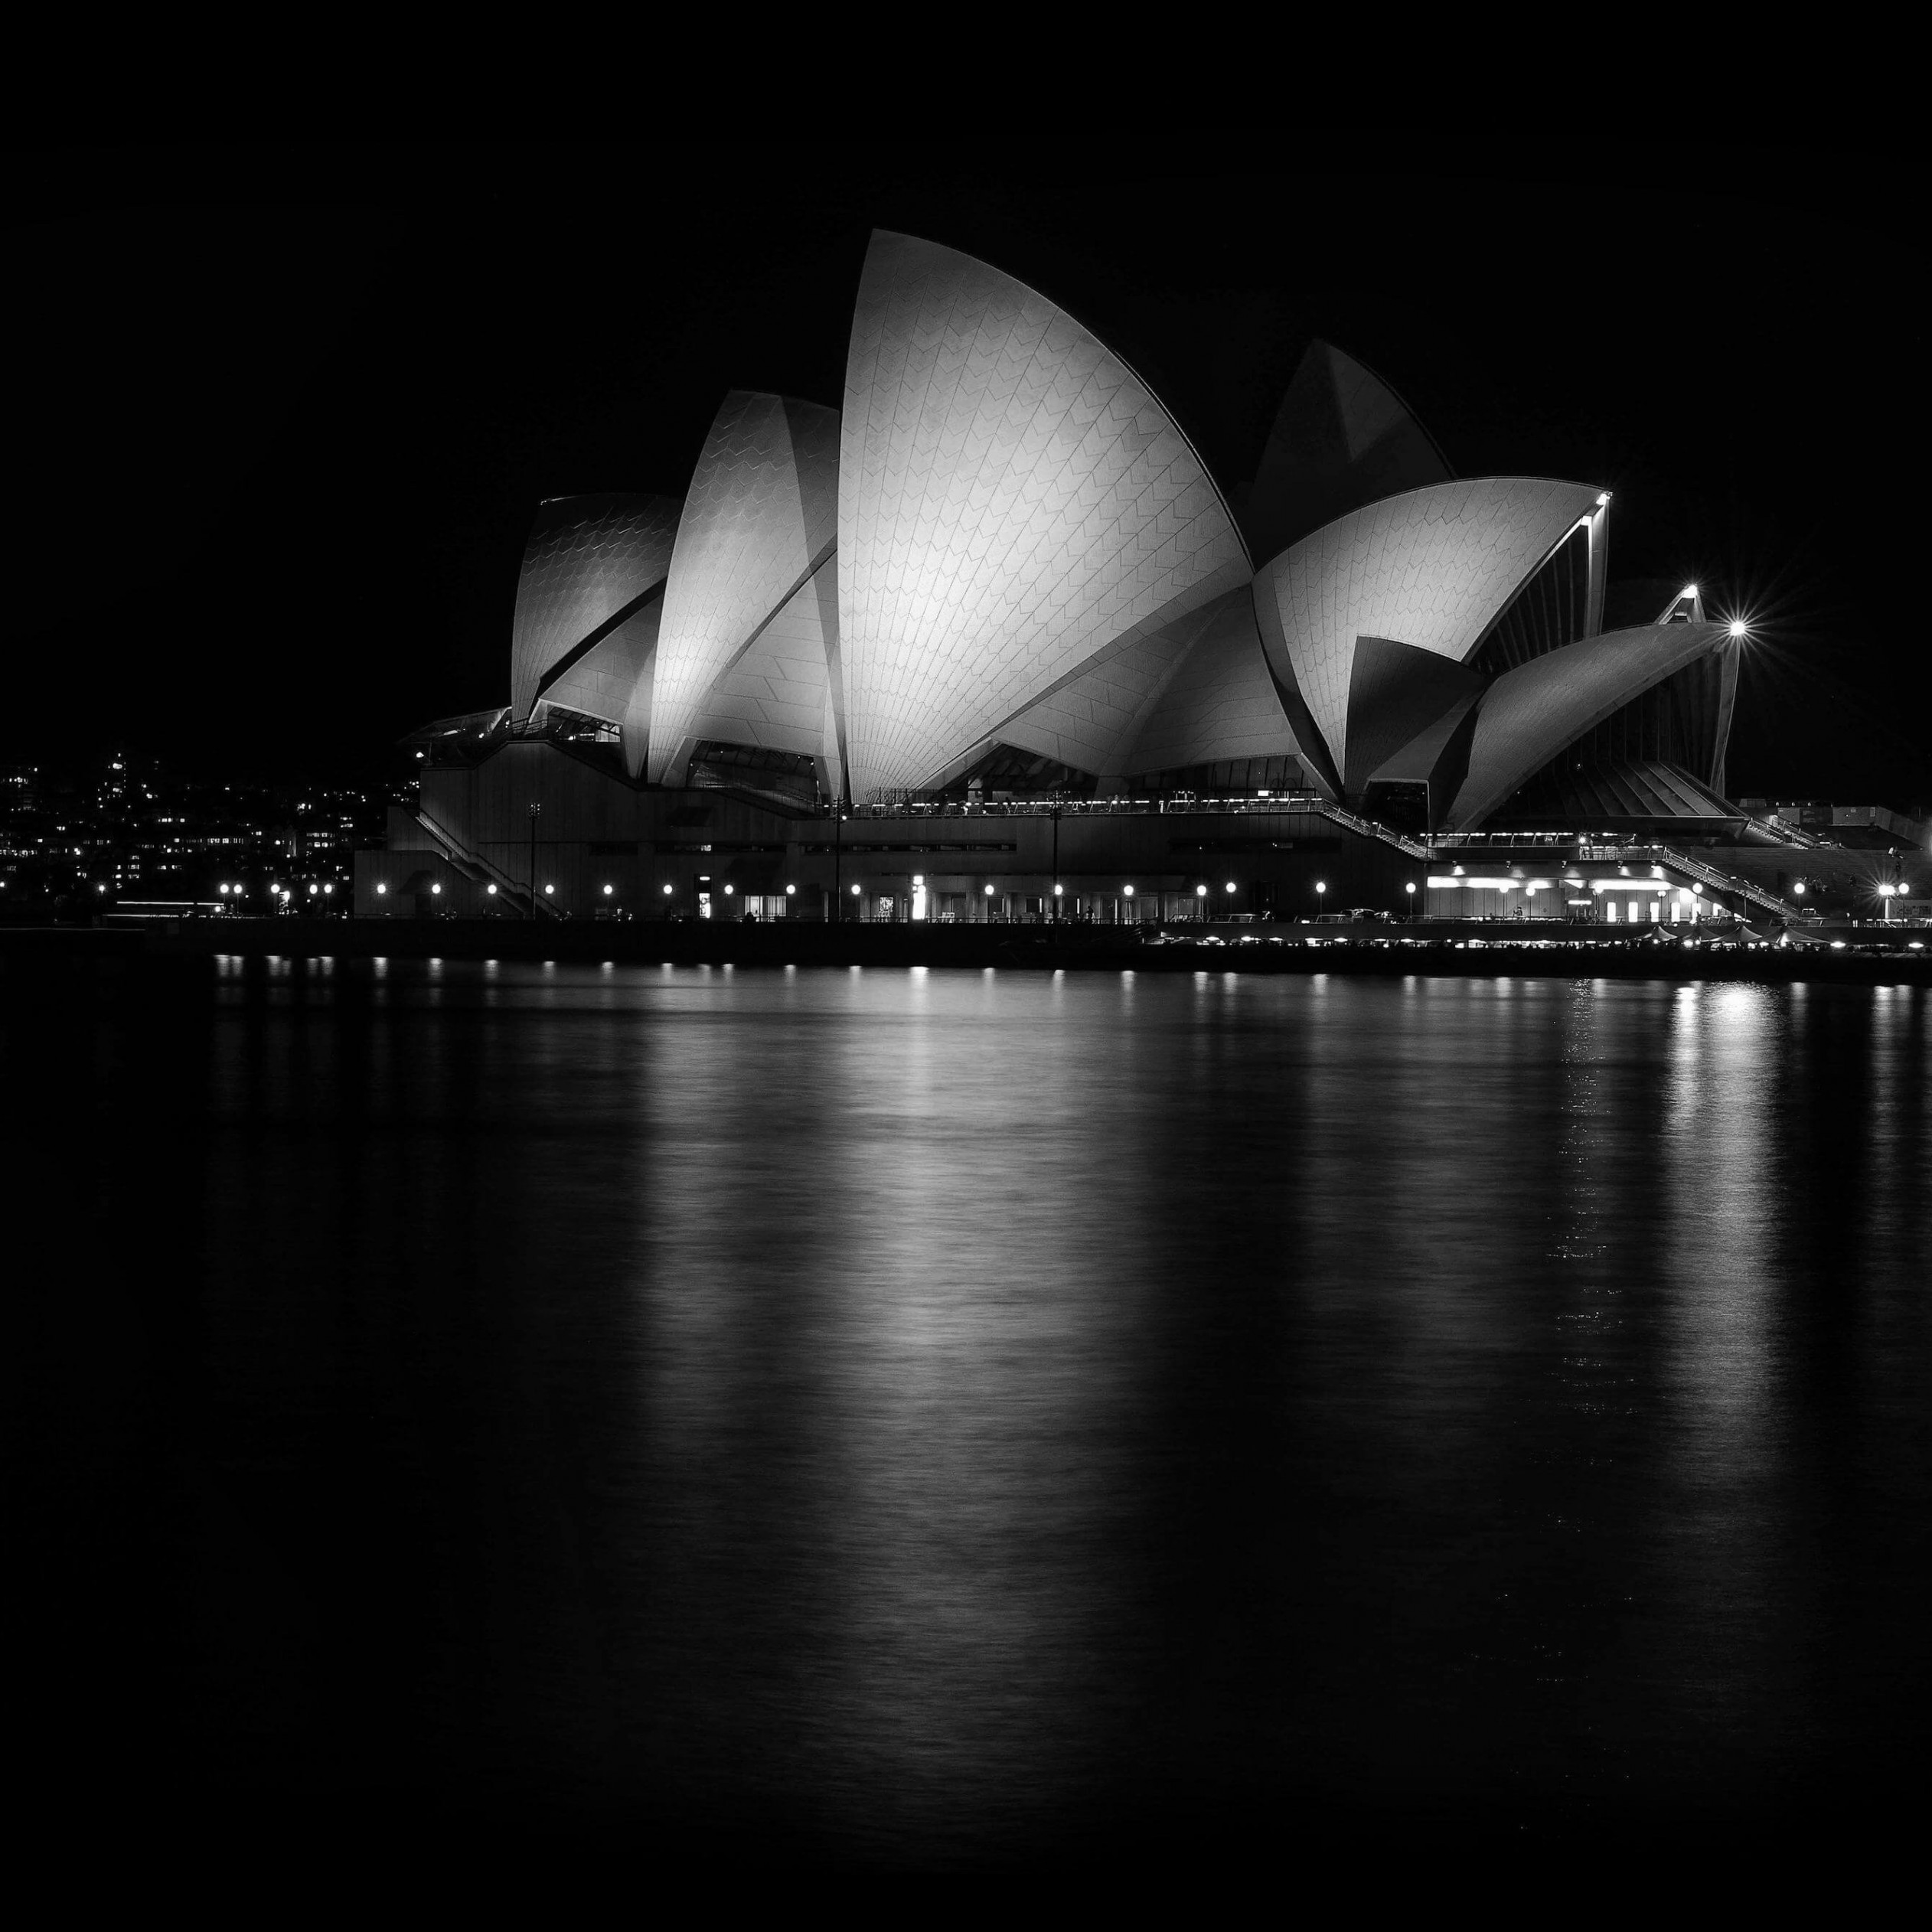 Sydney Opera House at Night in Black & White Wallpaper for Apple iPad Air